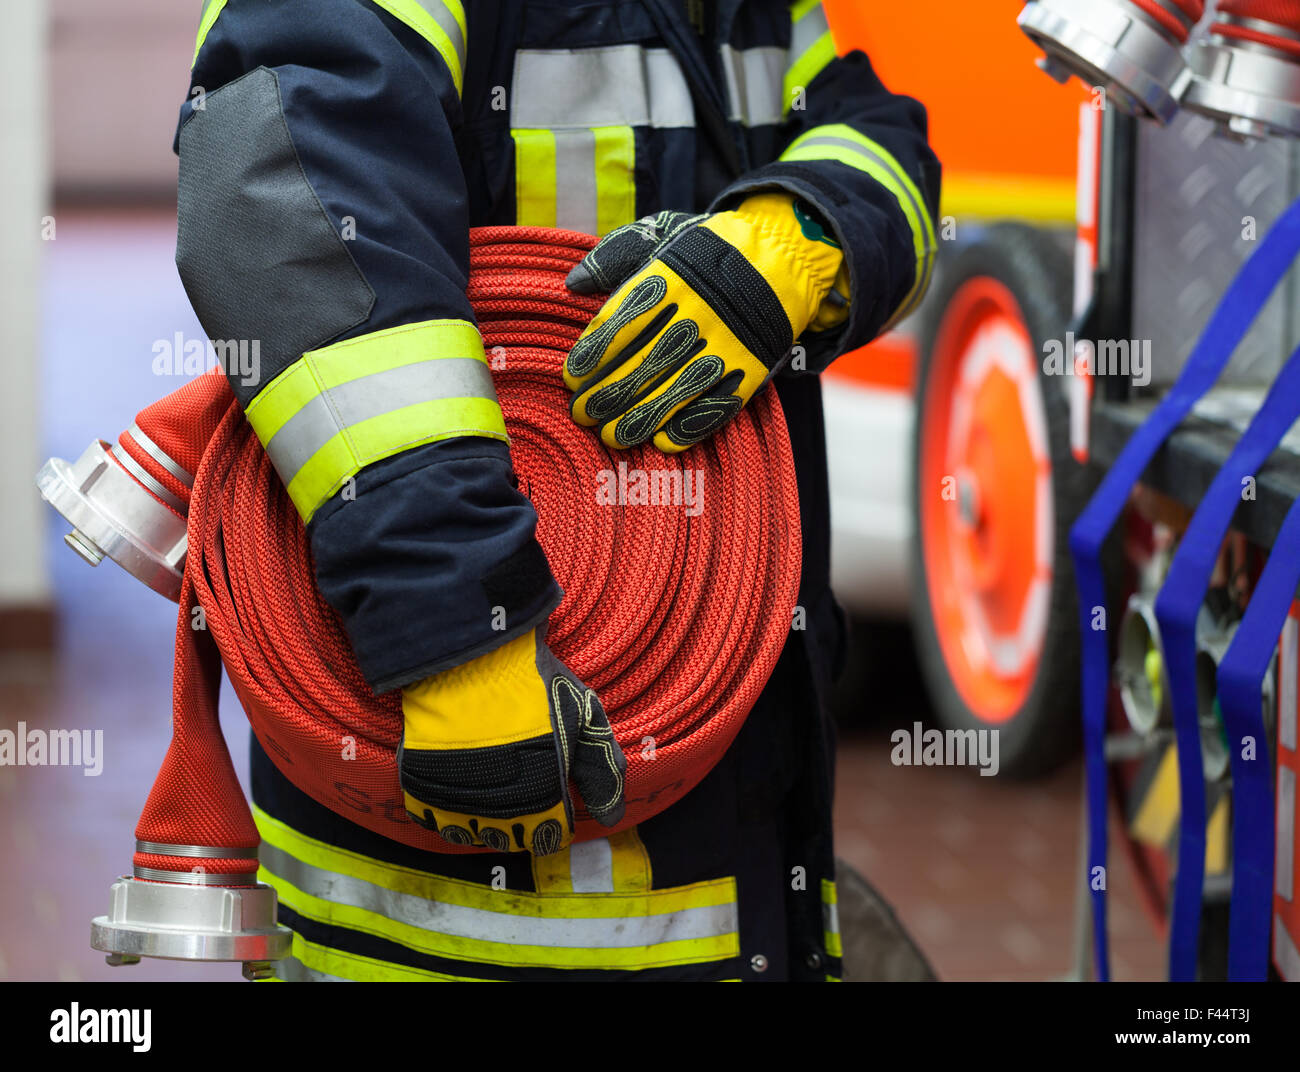 Fireman in action with water hose - Stock Image